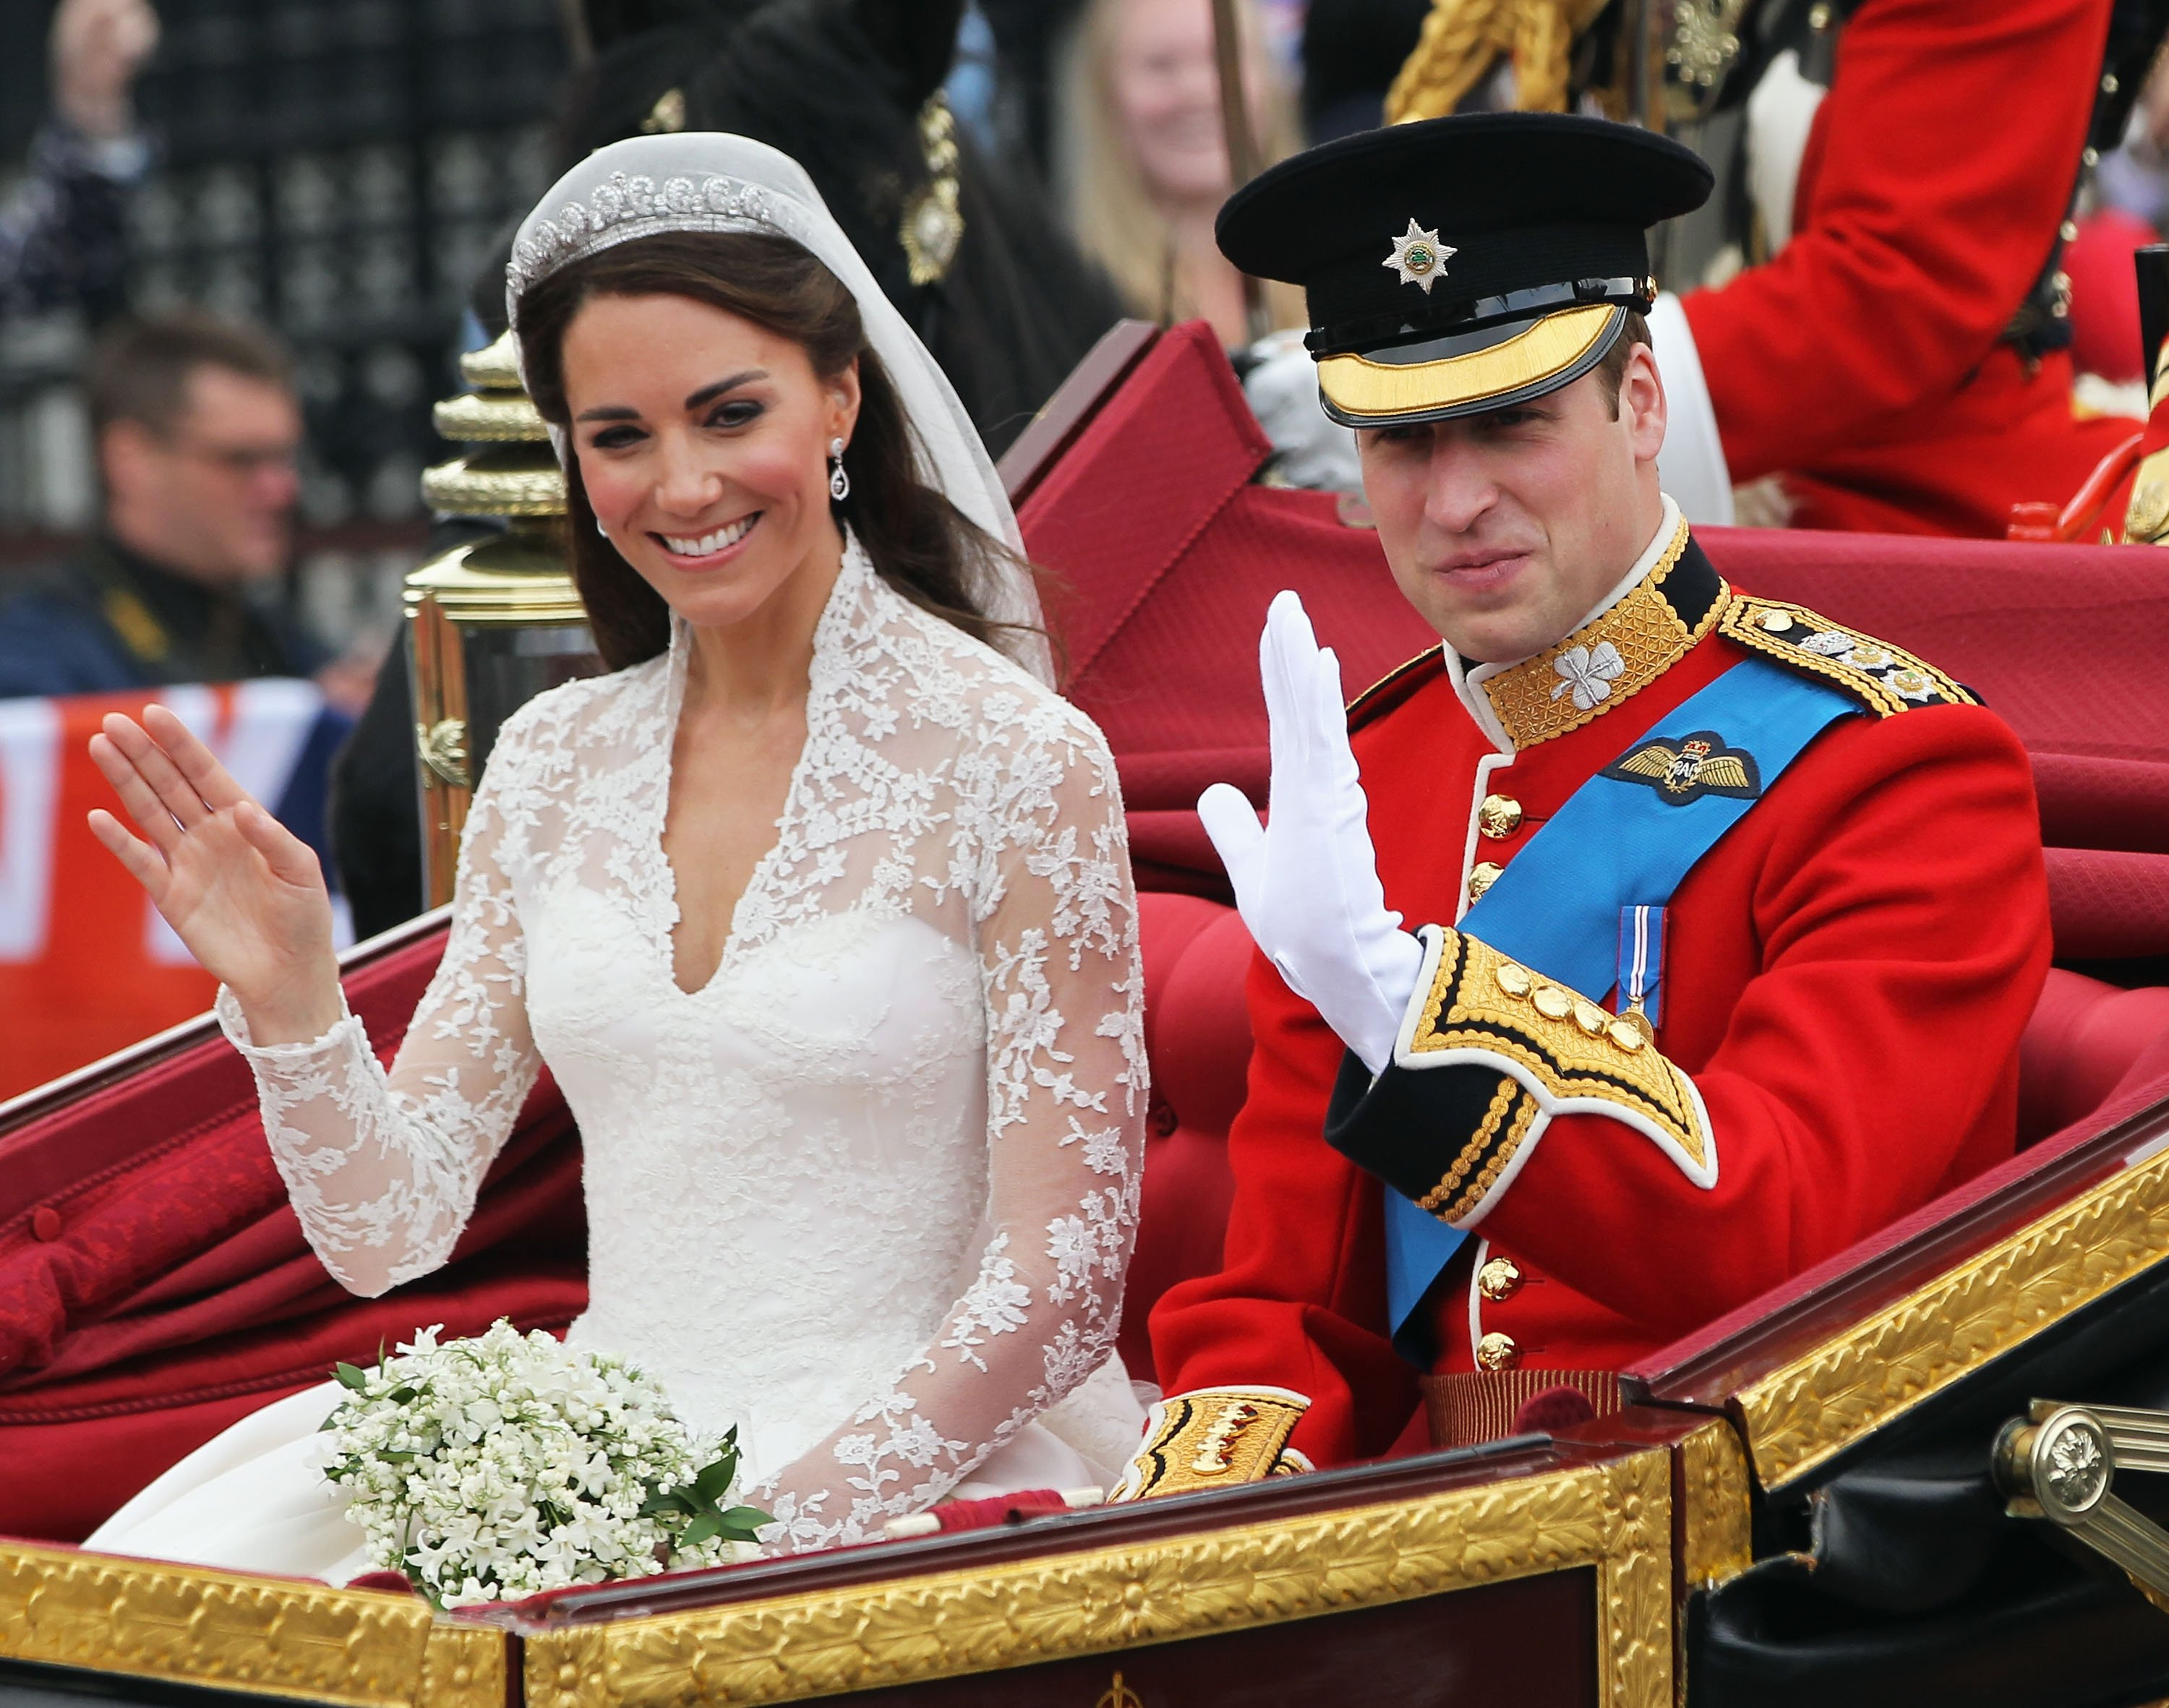 Image Source: Getty Images/Prince William and Duchess during their wedding